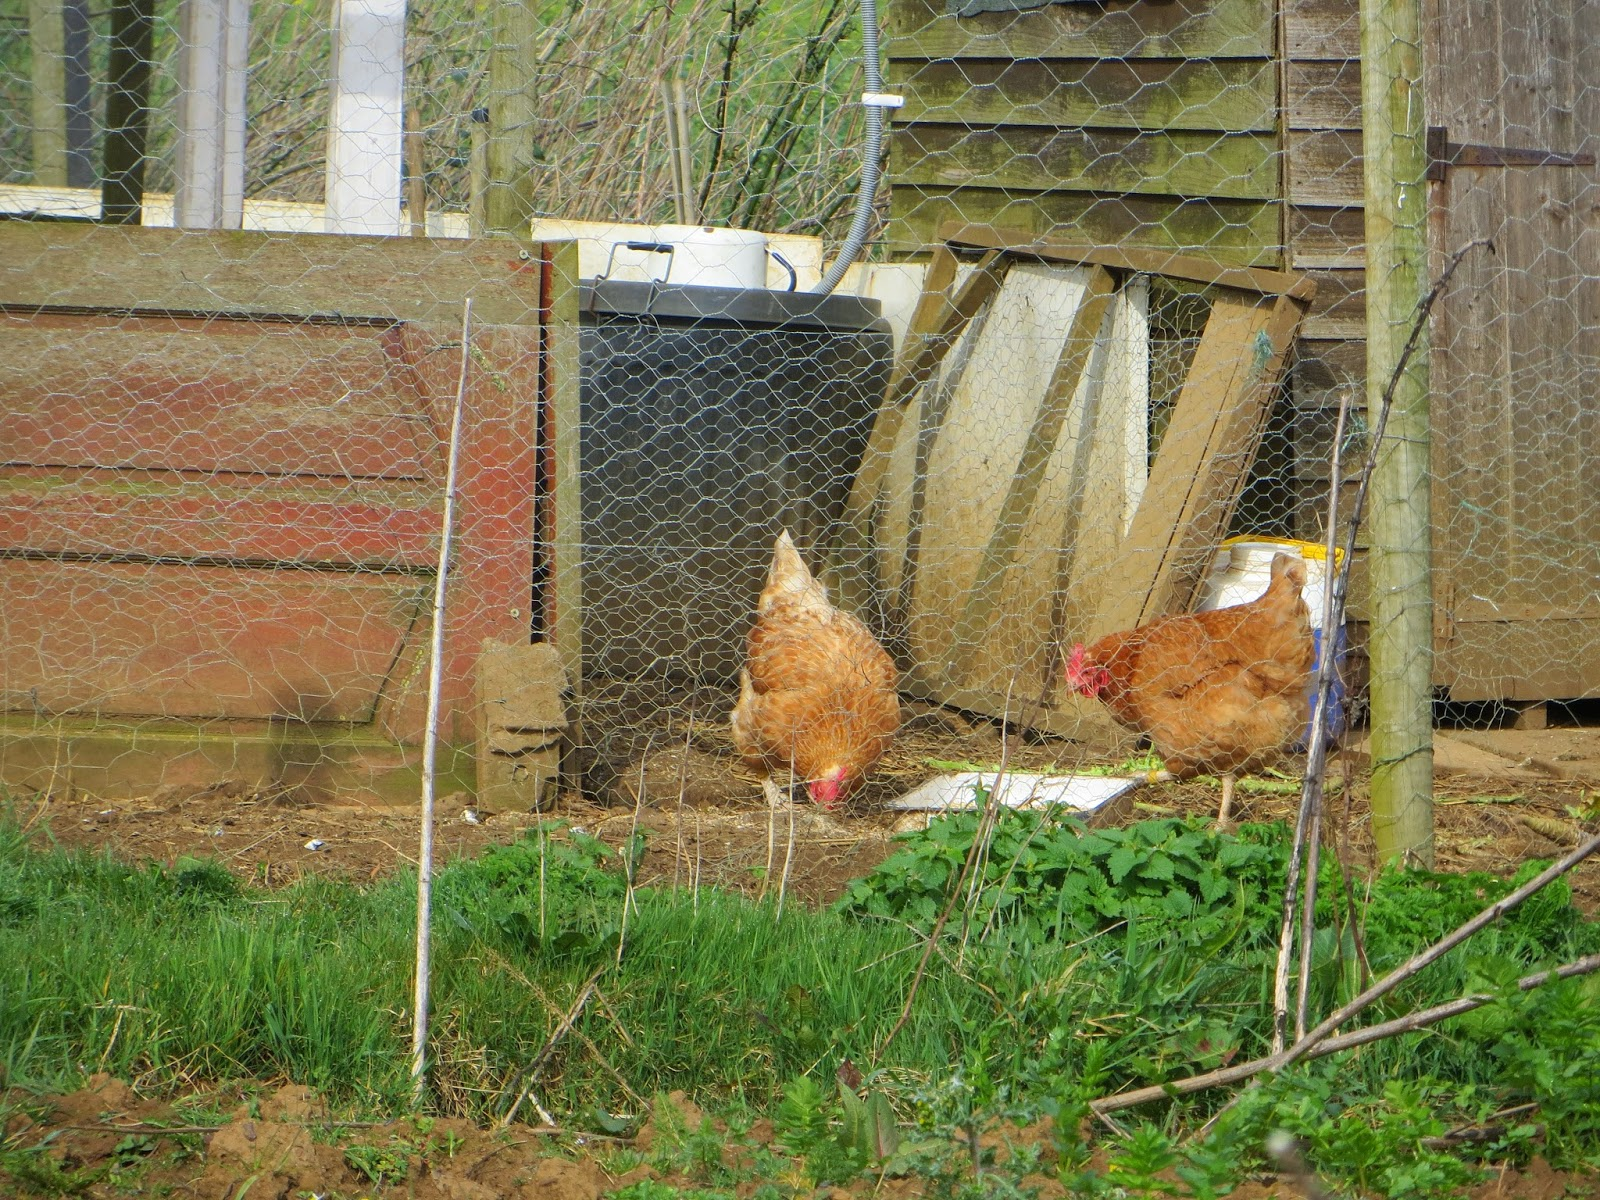 Lovely view of the chickens.